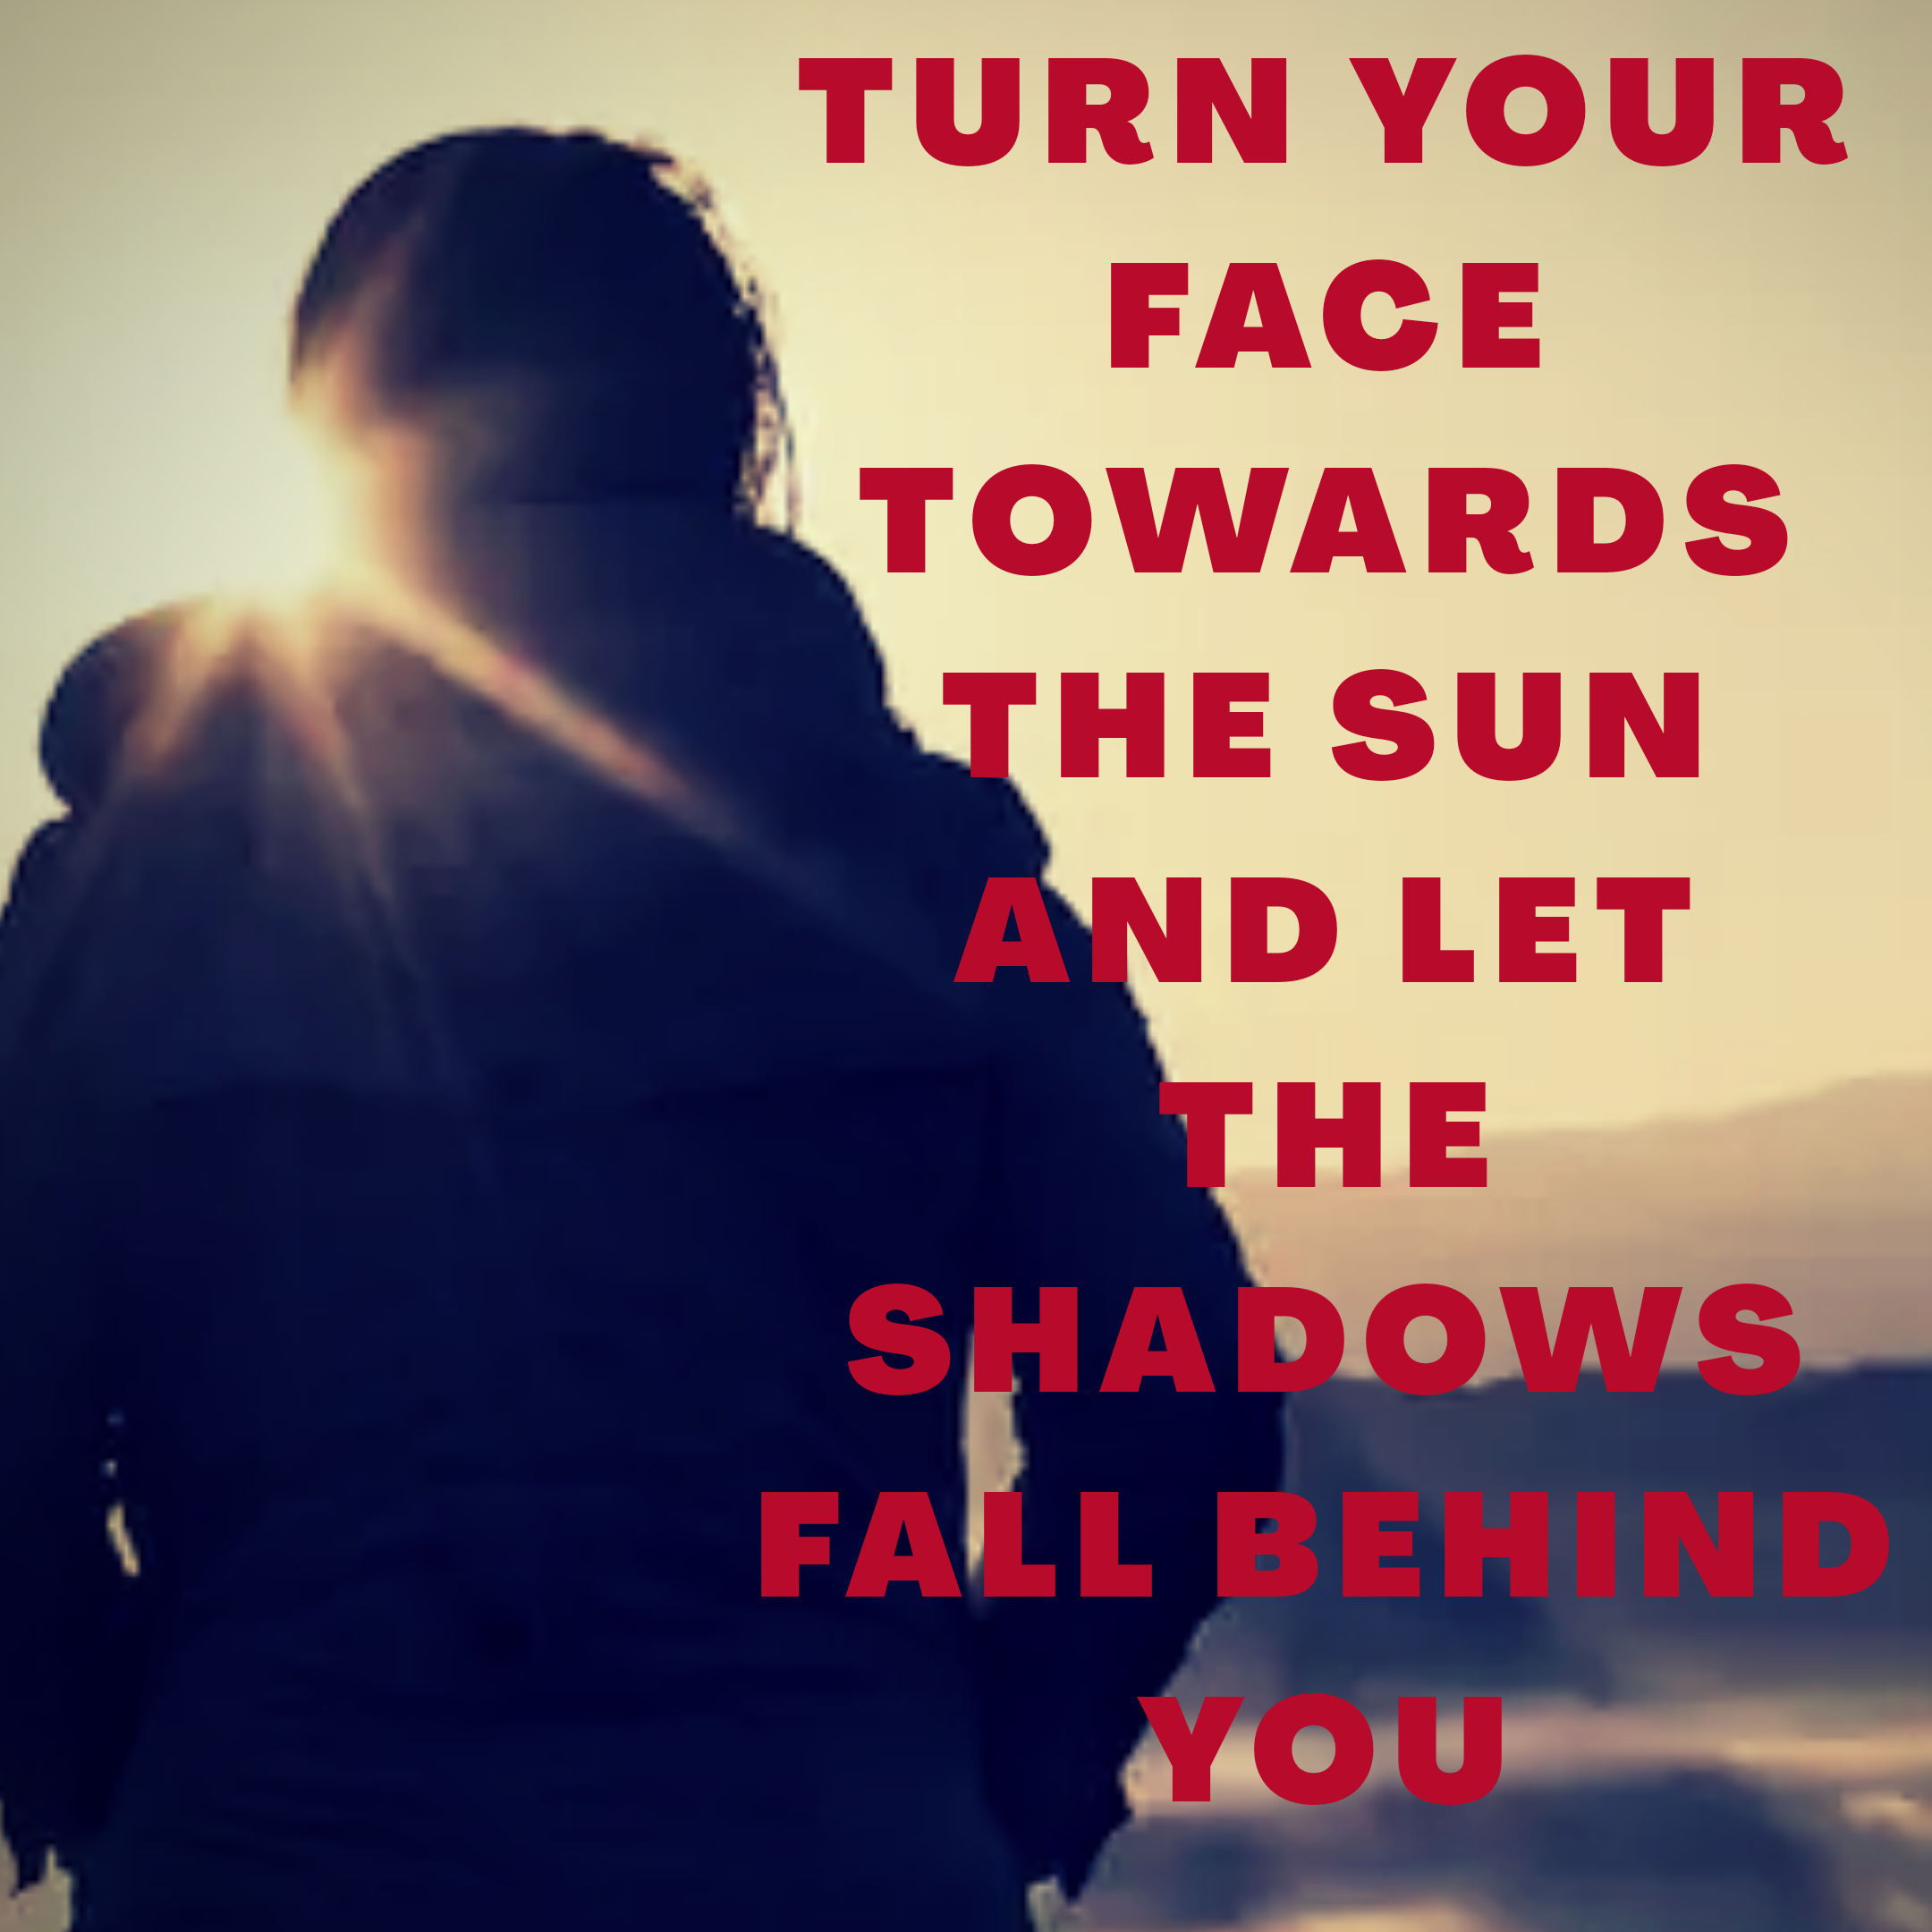 Turn your face towards the sun and let the shadows fall behind you [1080 x 1080]